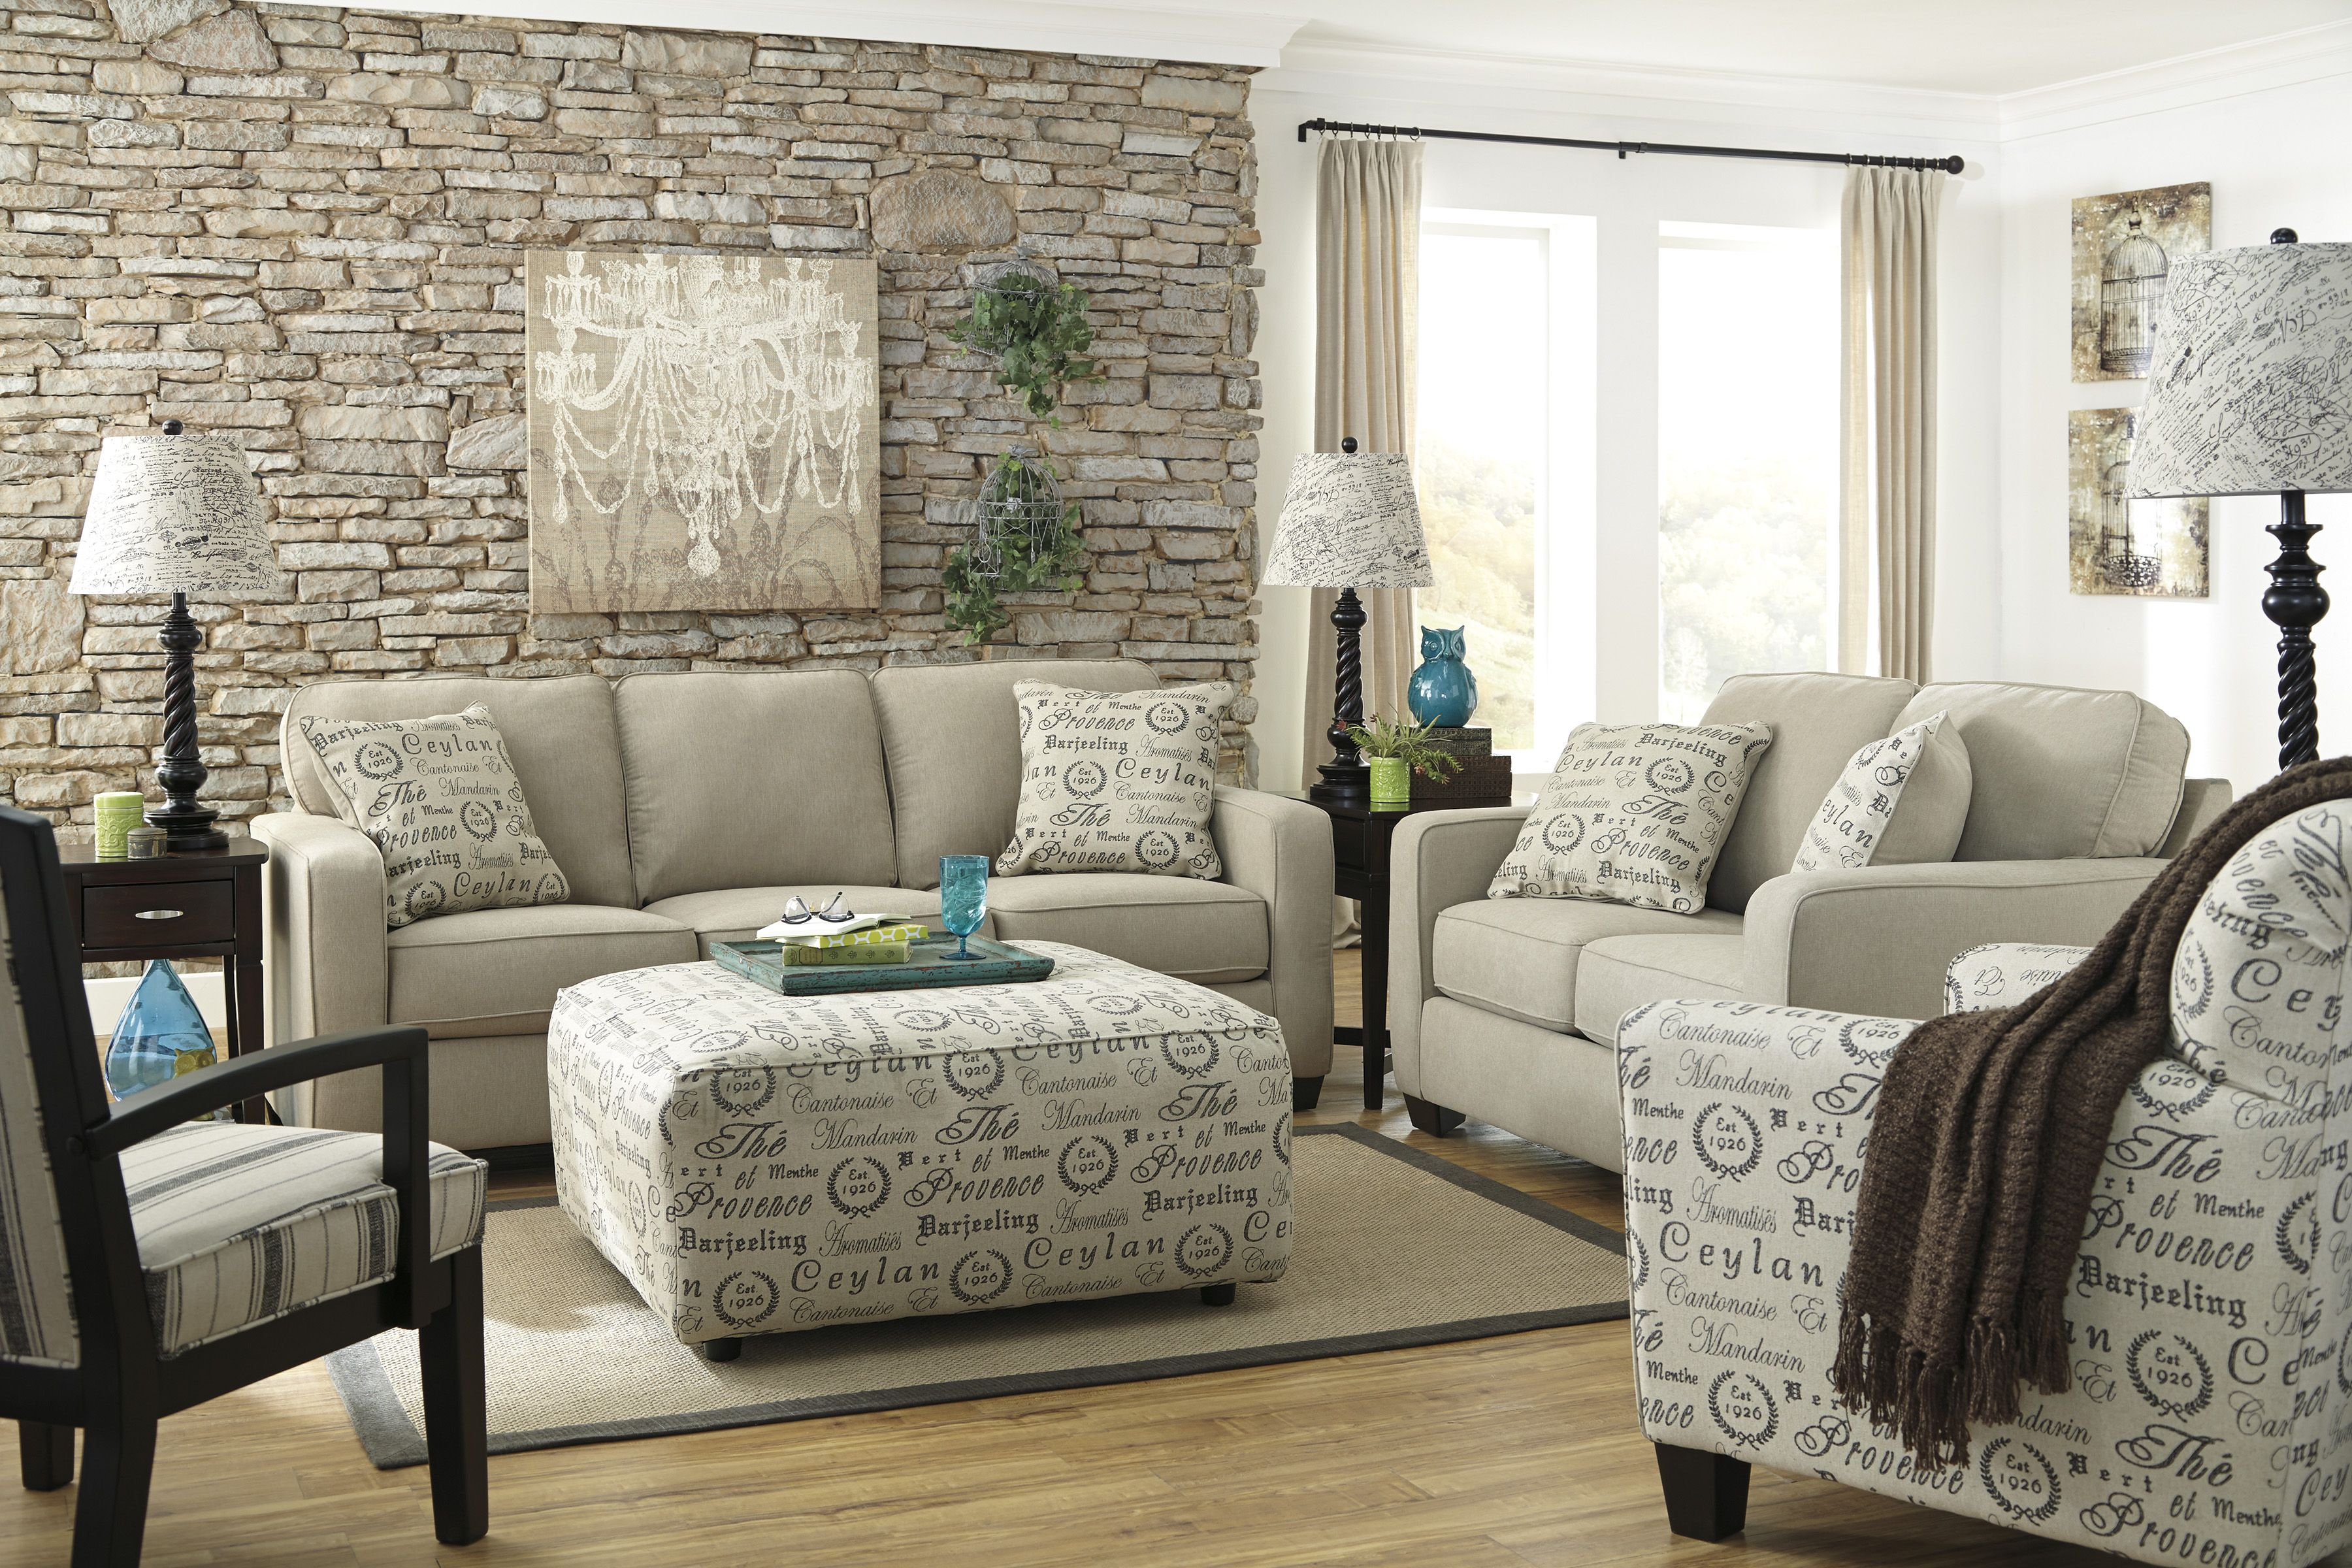 Match Your Accent Chair In With Your Throw Pillows To Tie Your Room Together Small Sectional Sofa Furniture Ashley Furniture